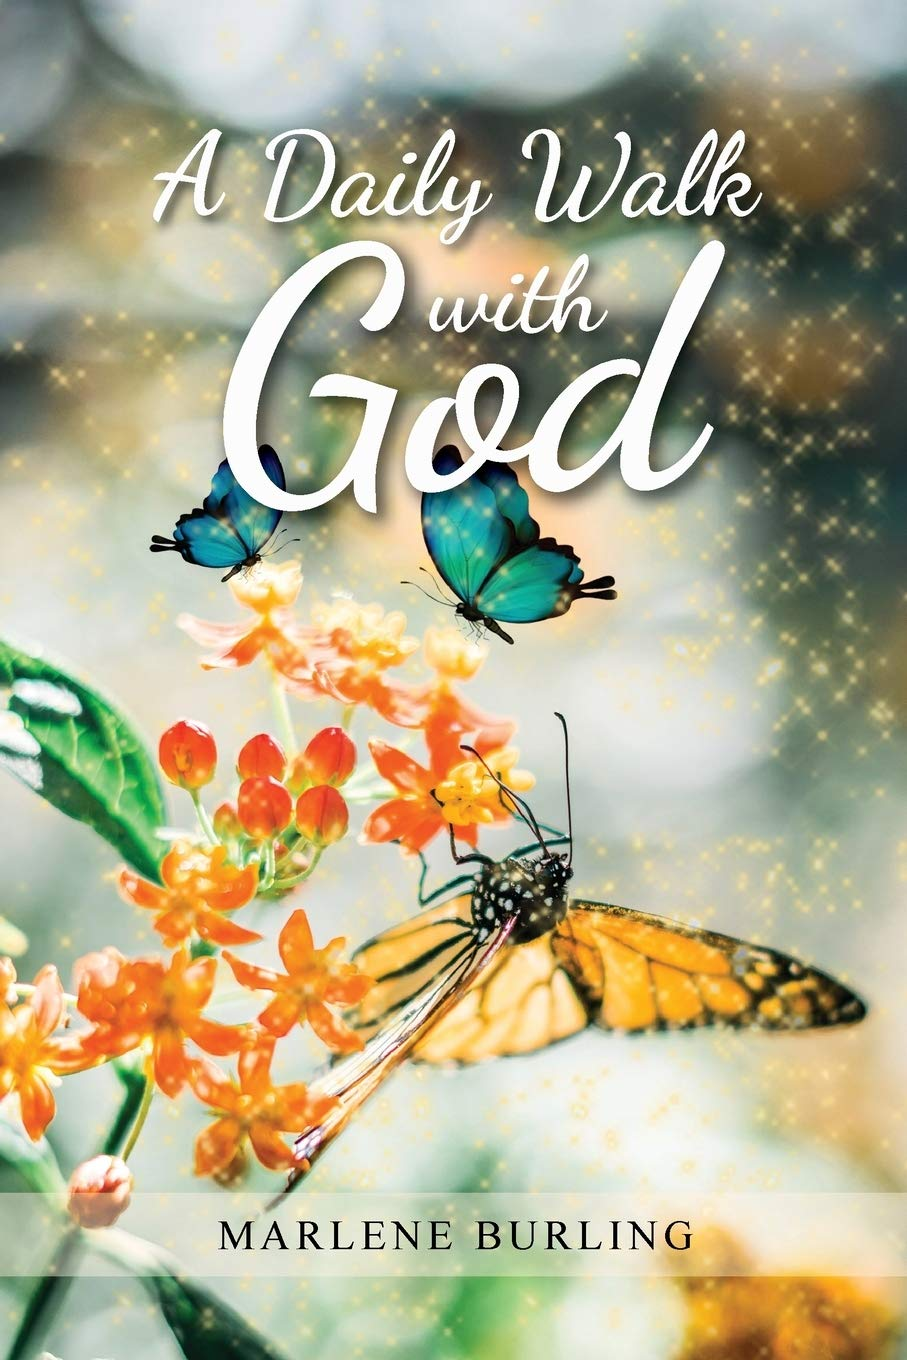 A Daily Walk with God by Marlene Burling in This Week in America with Ric Bratton